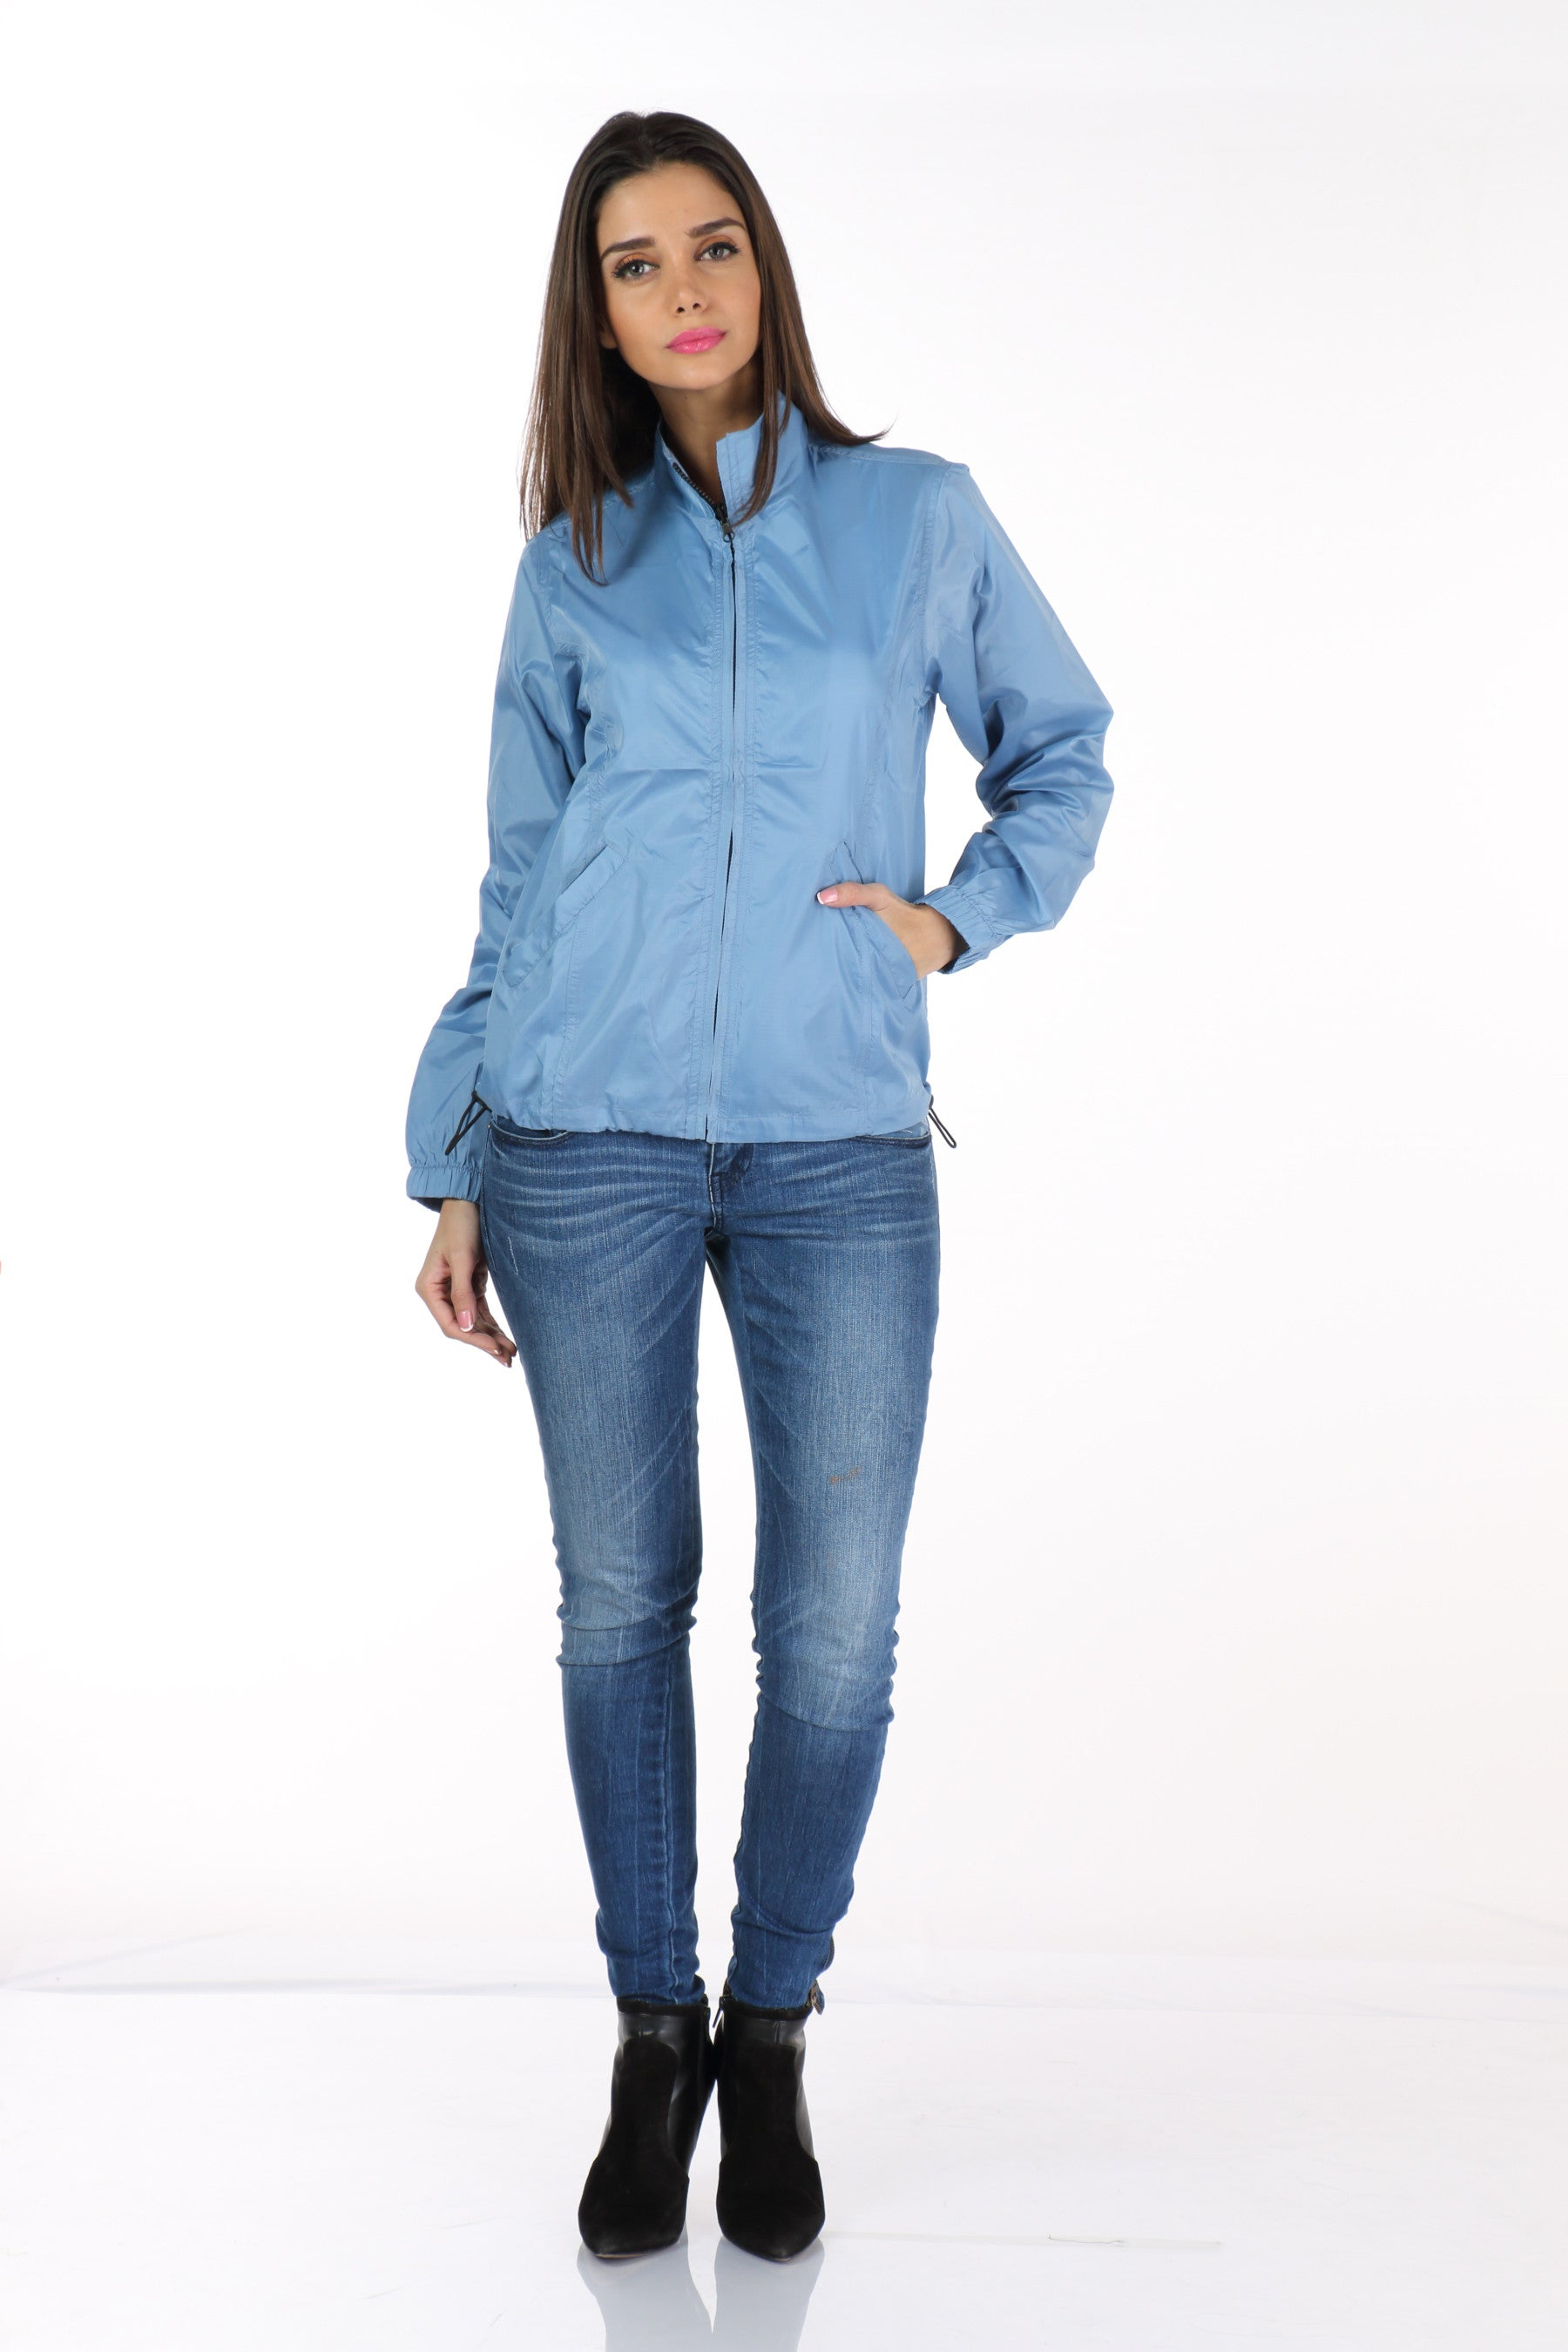 Rain Coat in Sky Blue Front